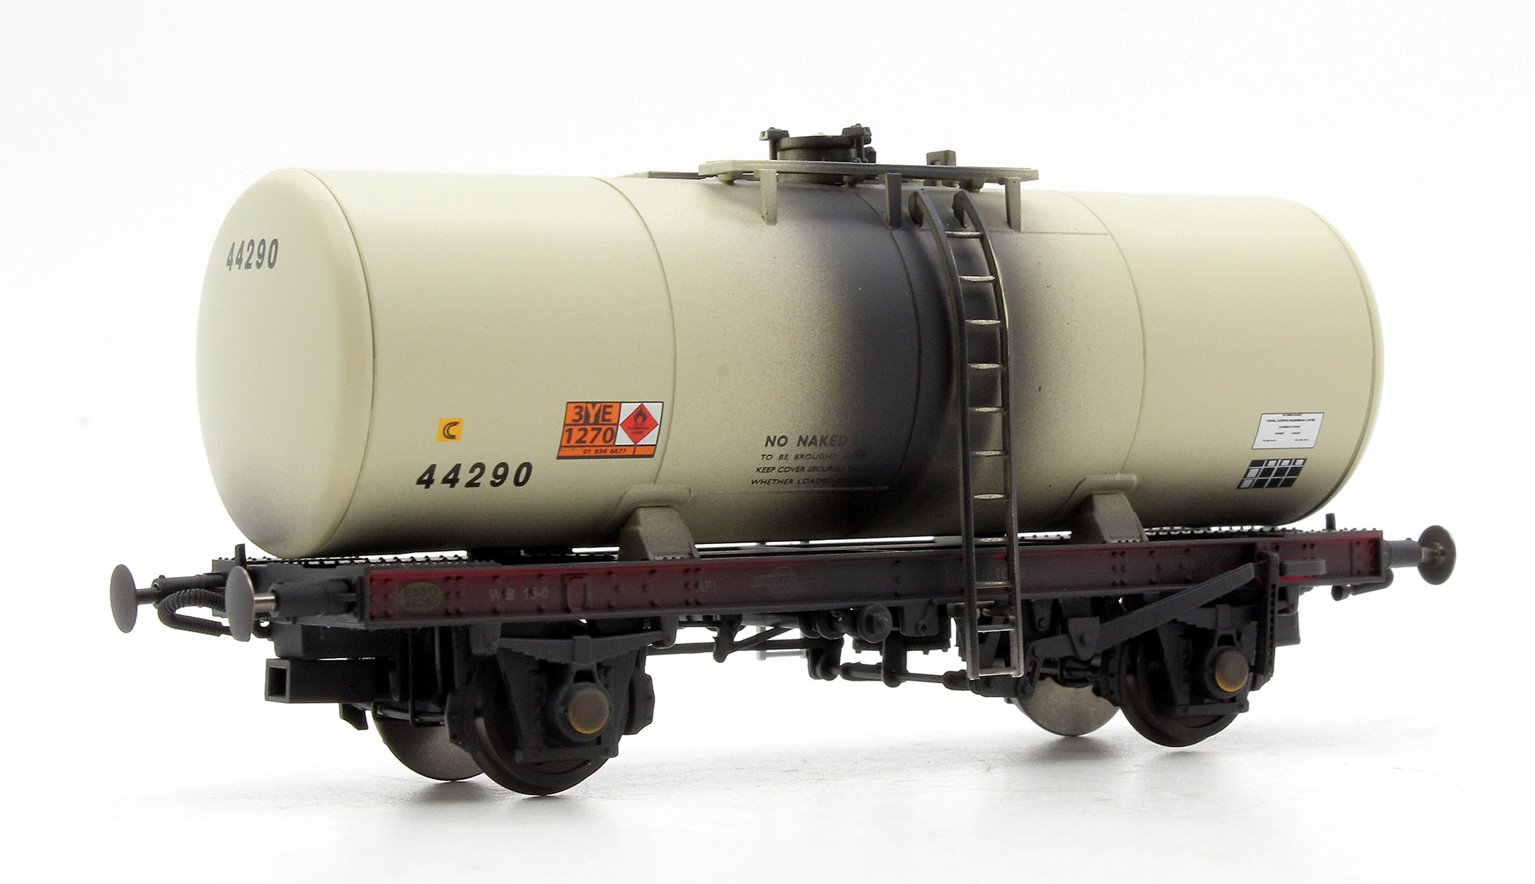 A Tank ESSO 44290 (grey - 1980's era with Hazchem symbols) Weathered